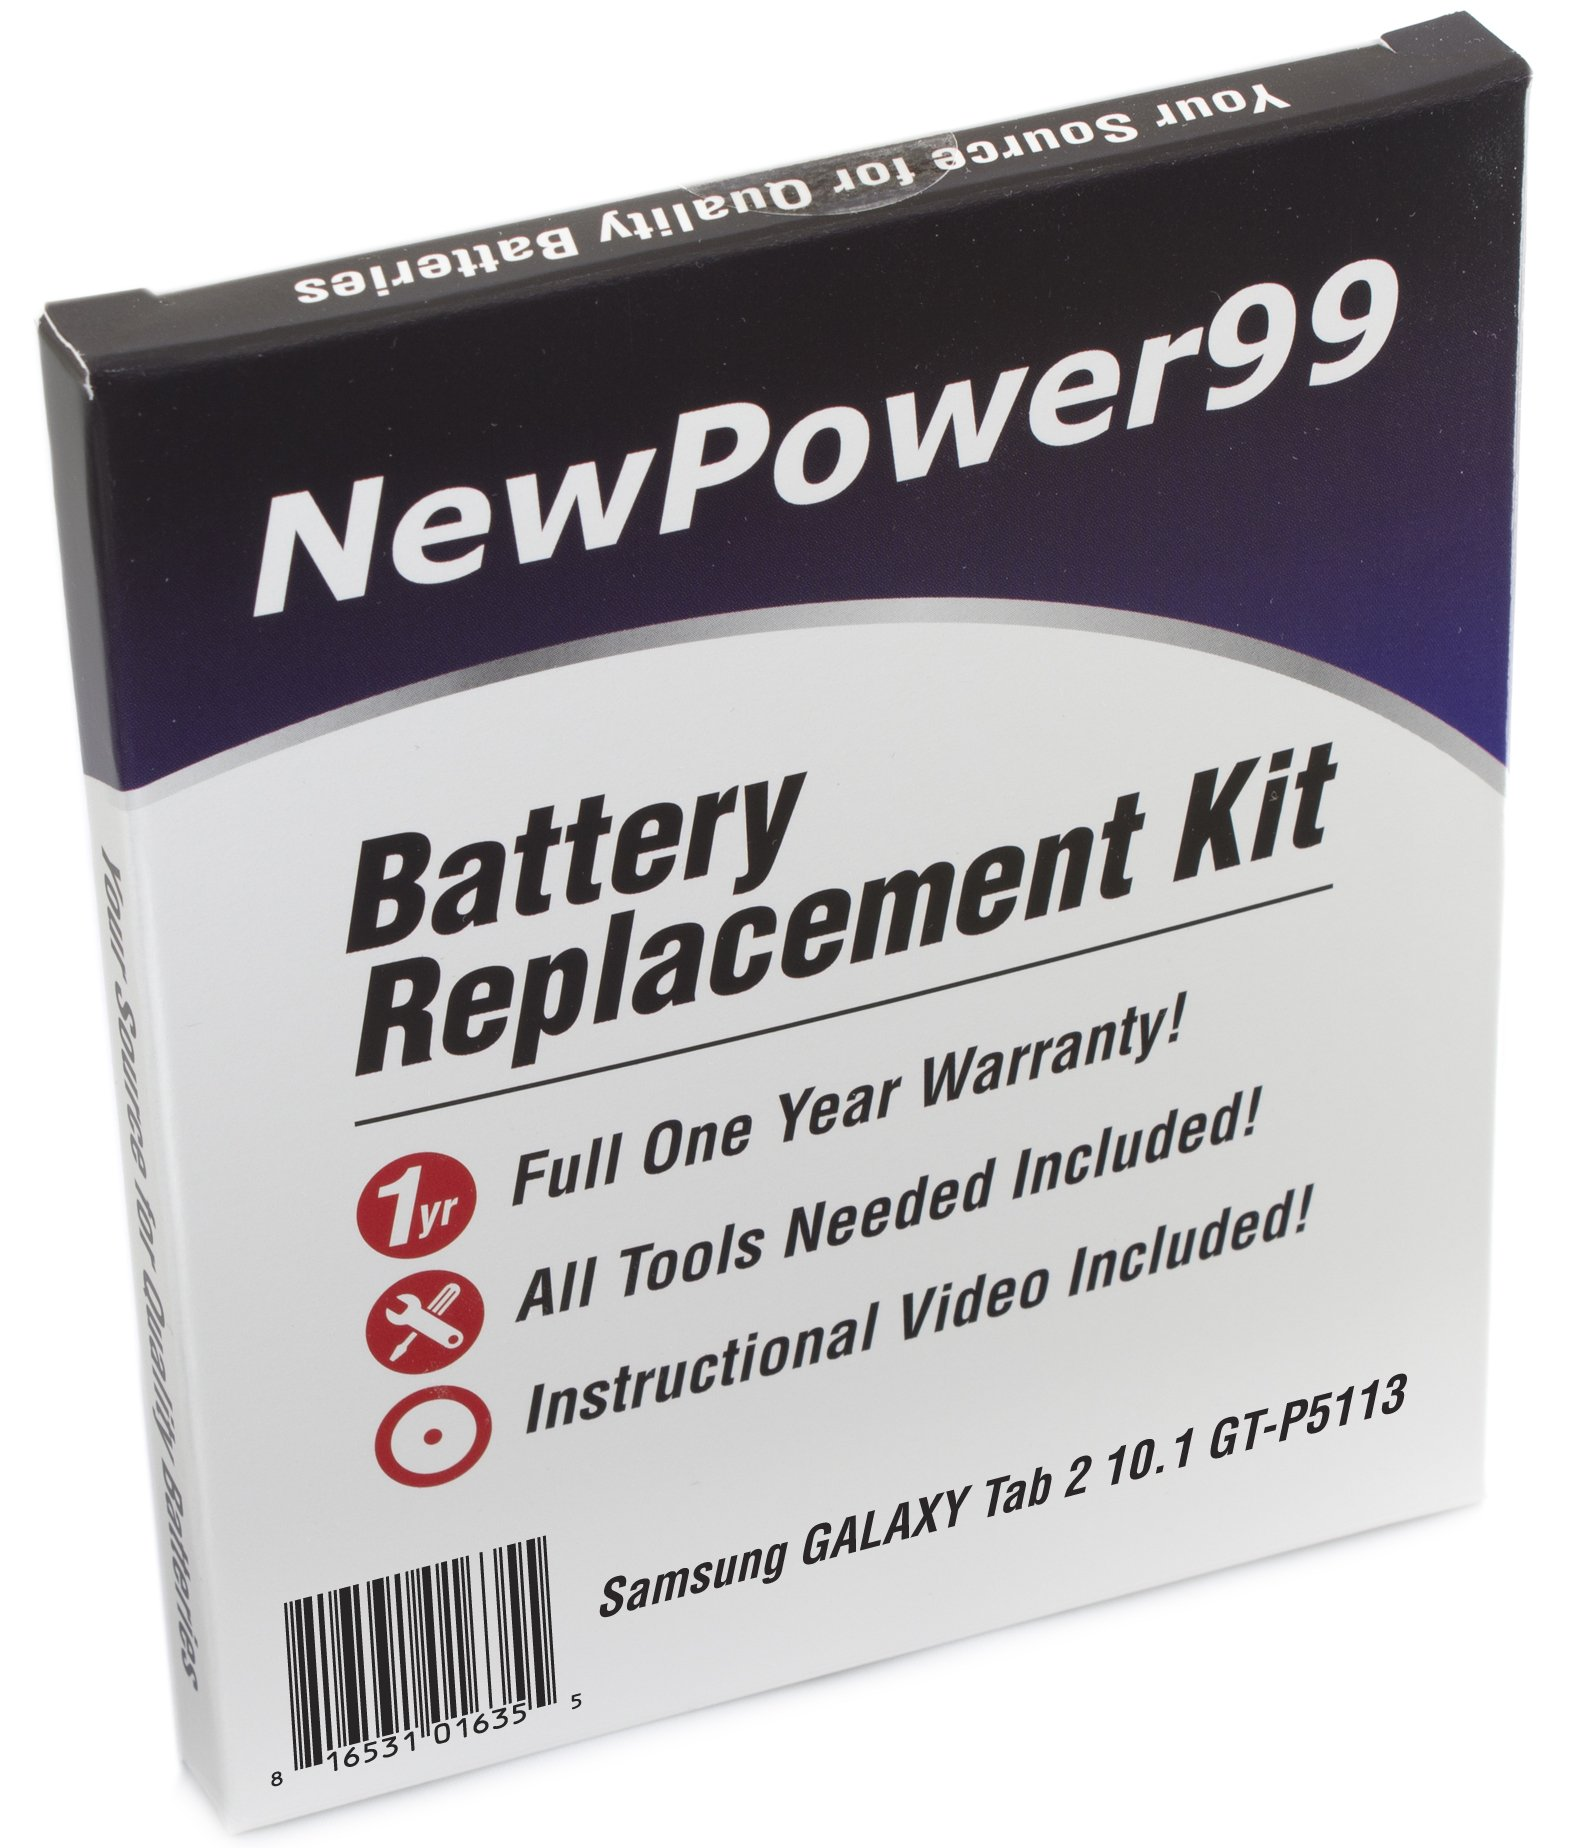 NewPower99 Battery Replacement Kit with Battery, Instructions and Tools compatible with Samsung GALAXY Tab 2 10.1 GT-P5113